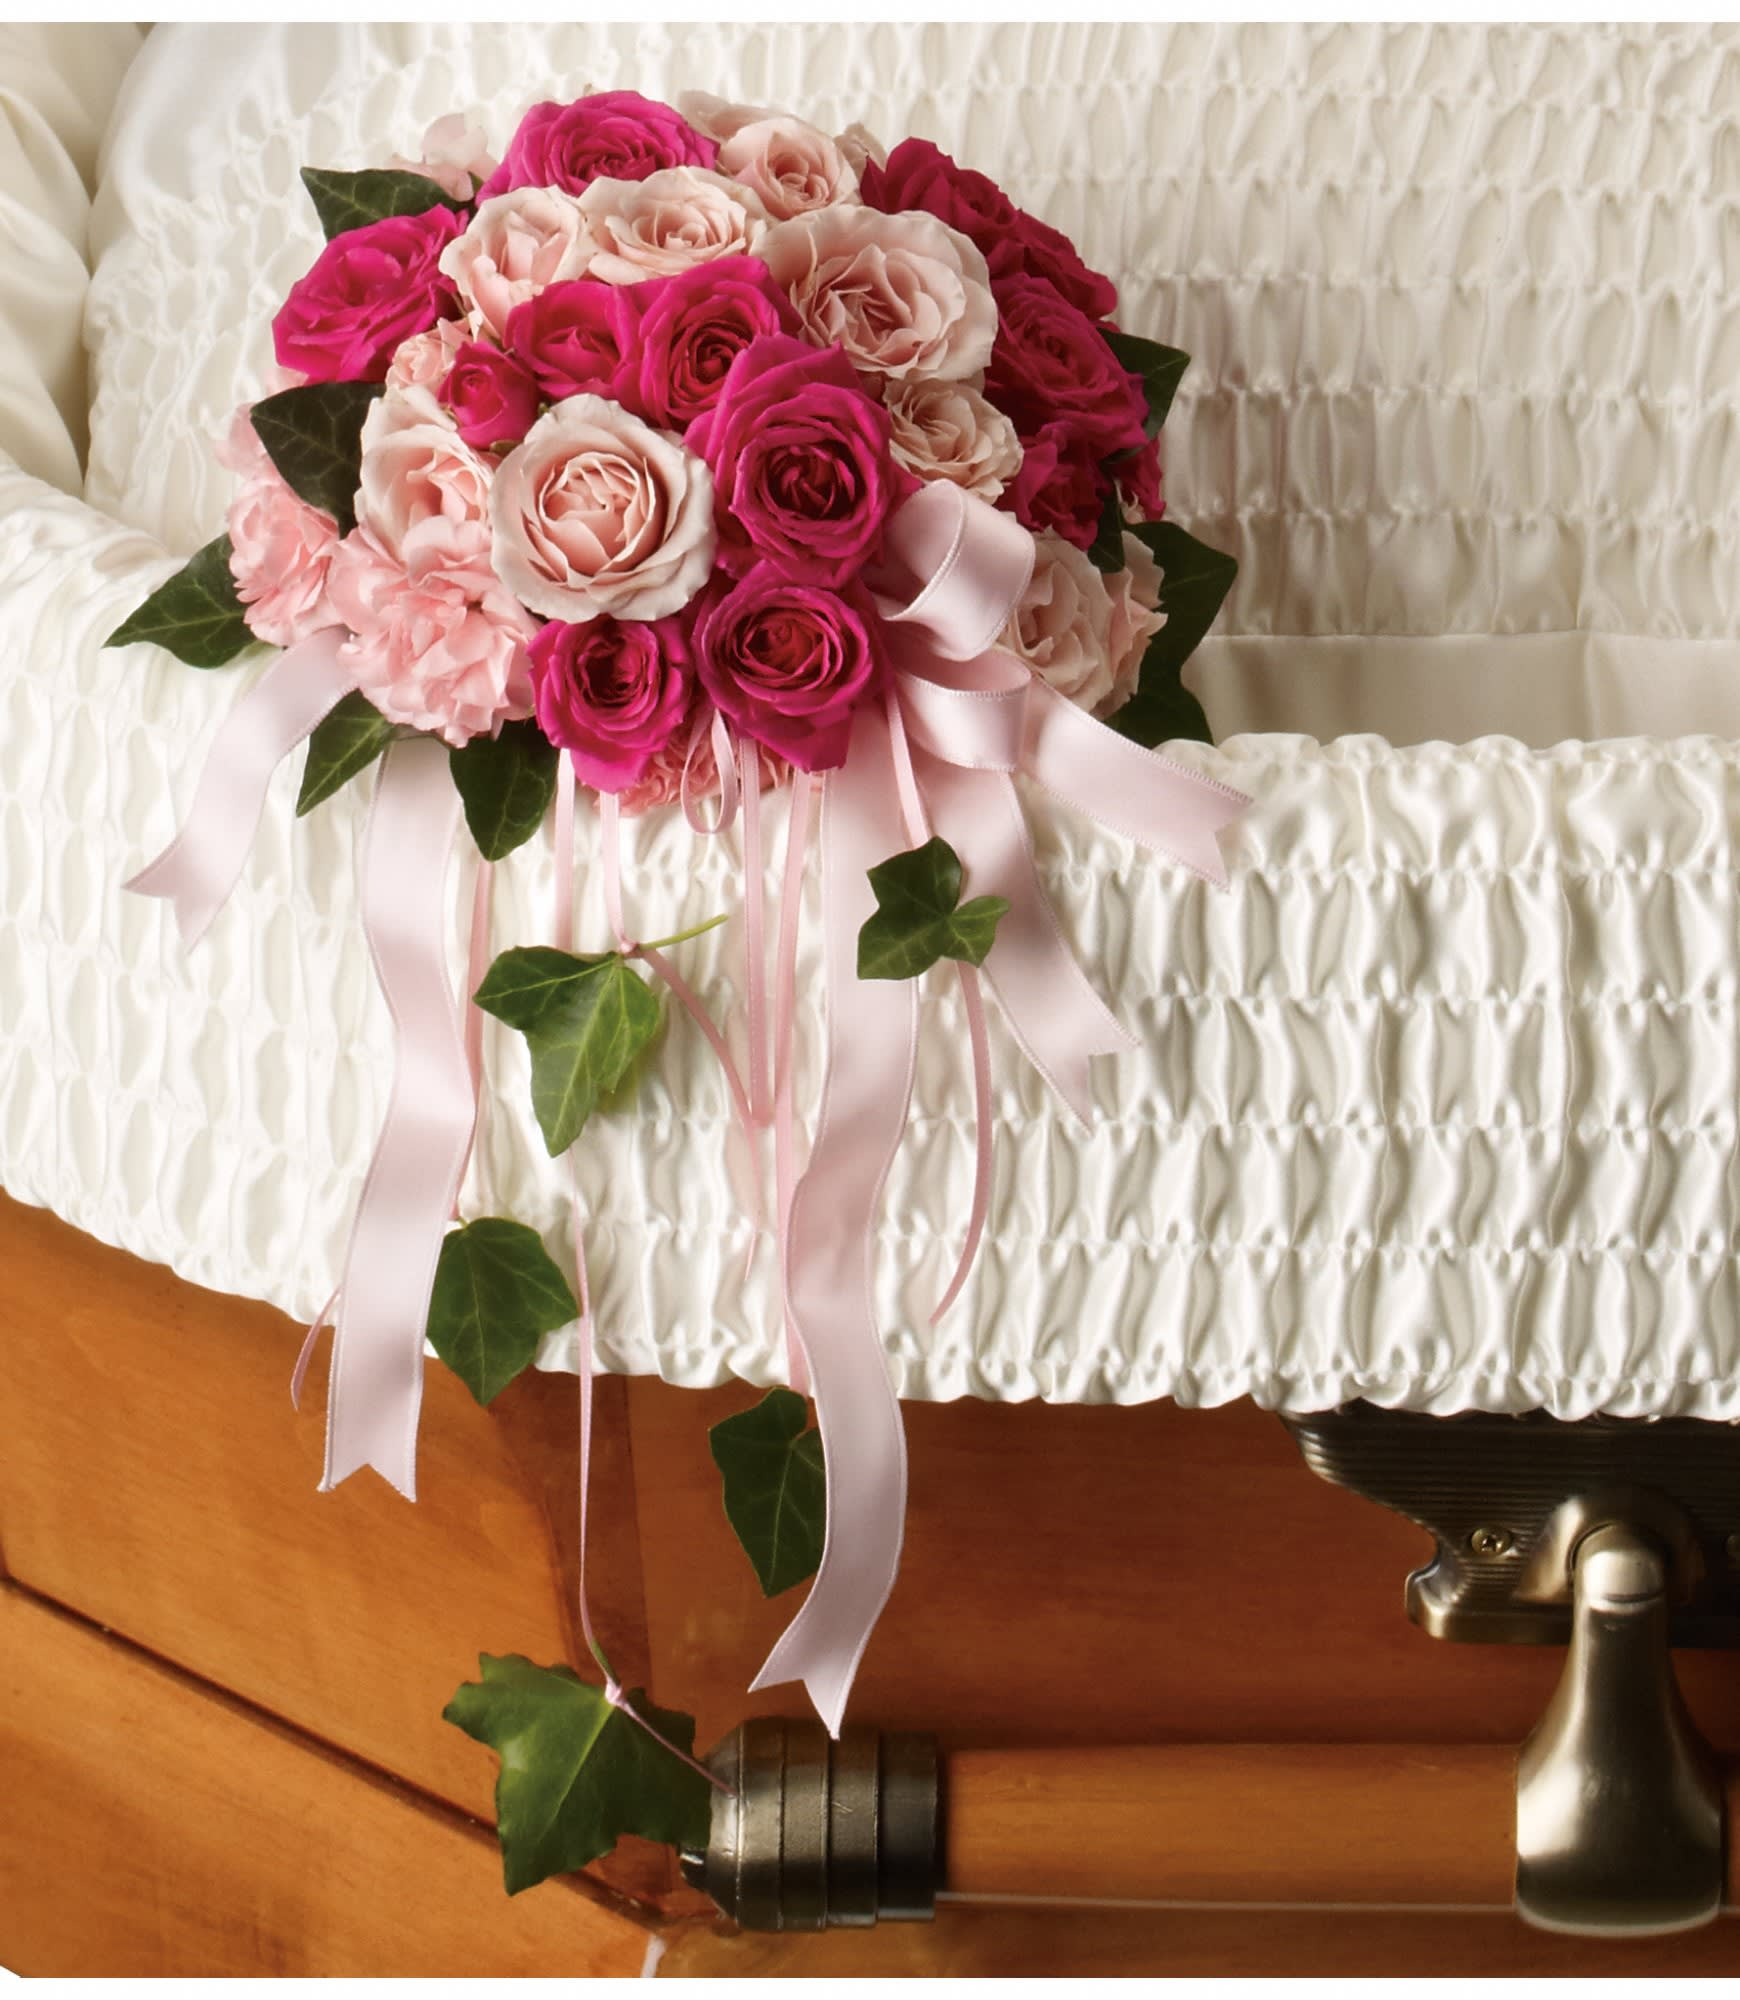 Rose Reflection Casket Insert by Teleflora in San Juan Capistrano, CA |  Mother Earth Florist